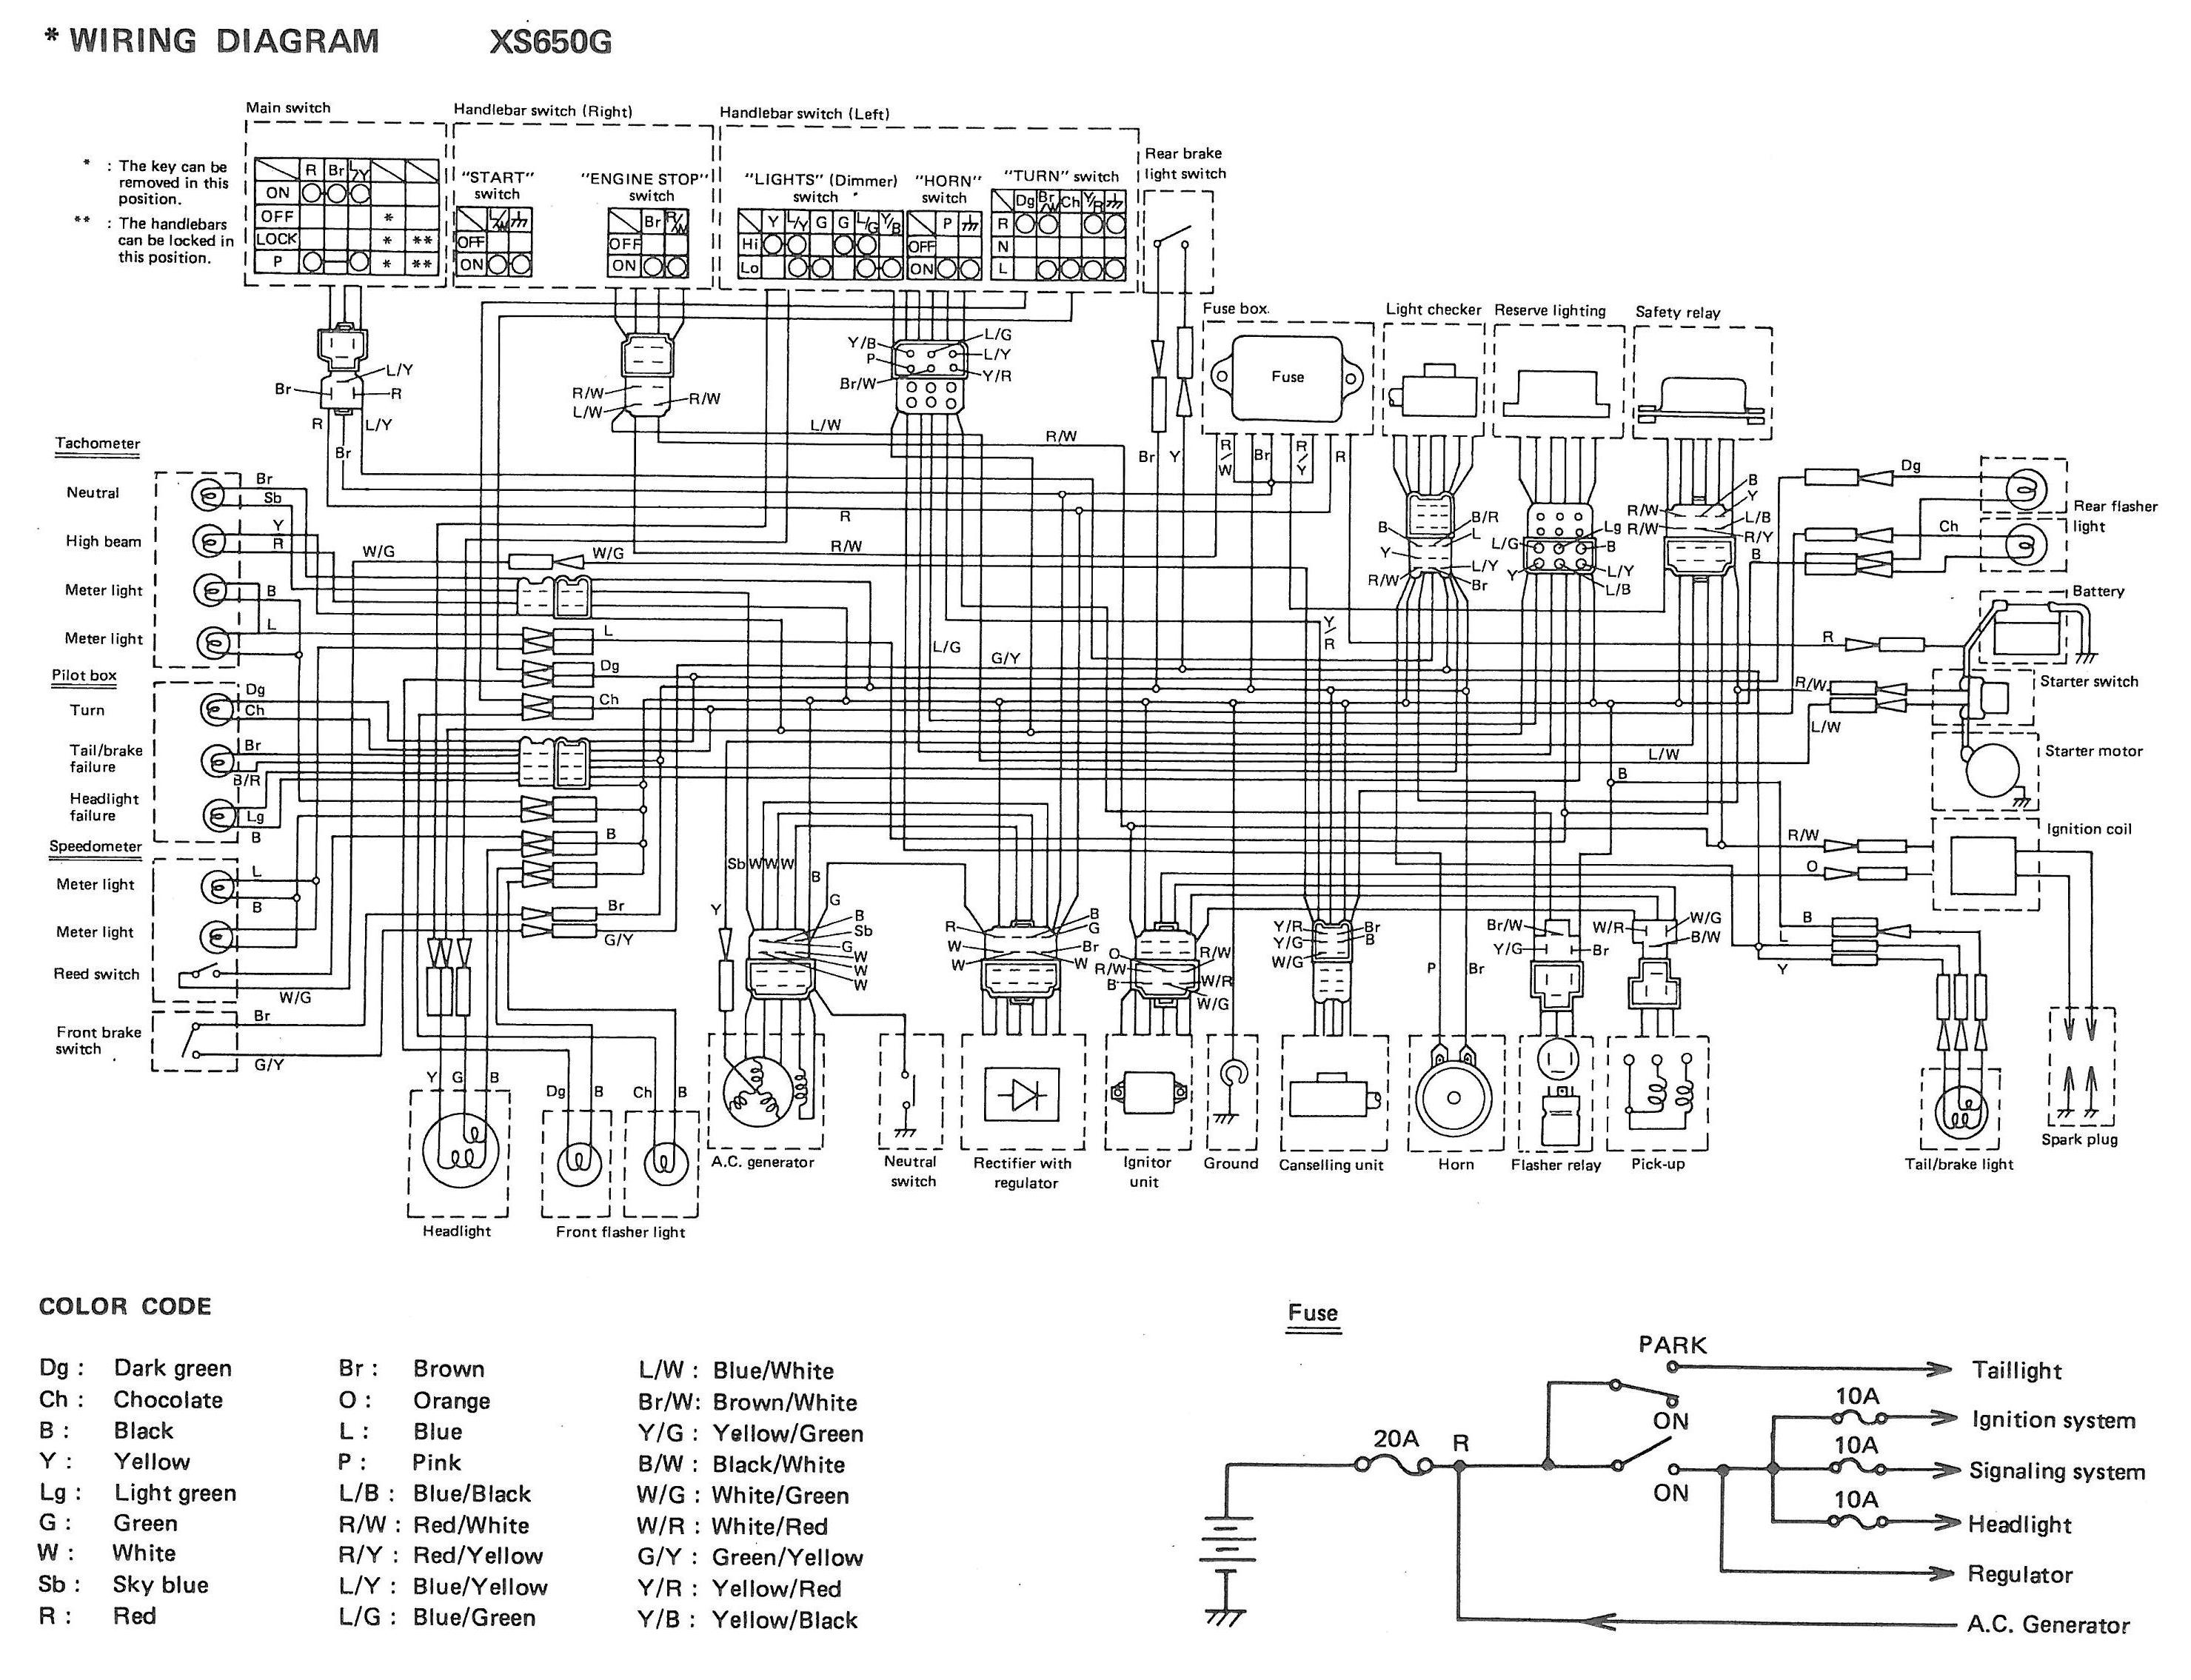 1977 Yamaha Xs650 Wiring Diagram WIRING CENTER